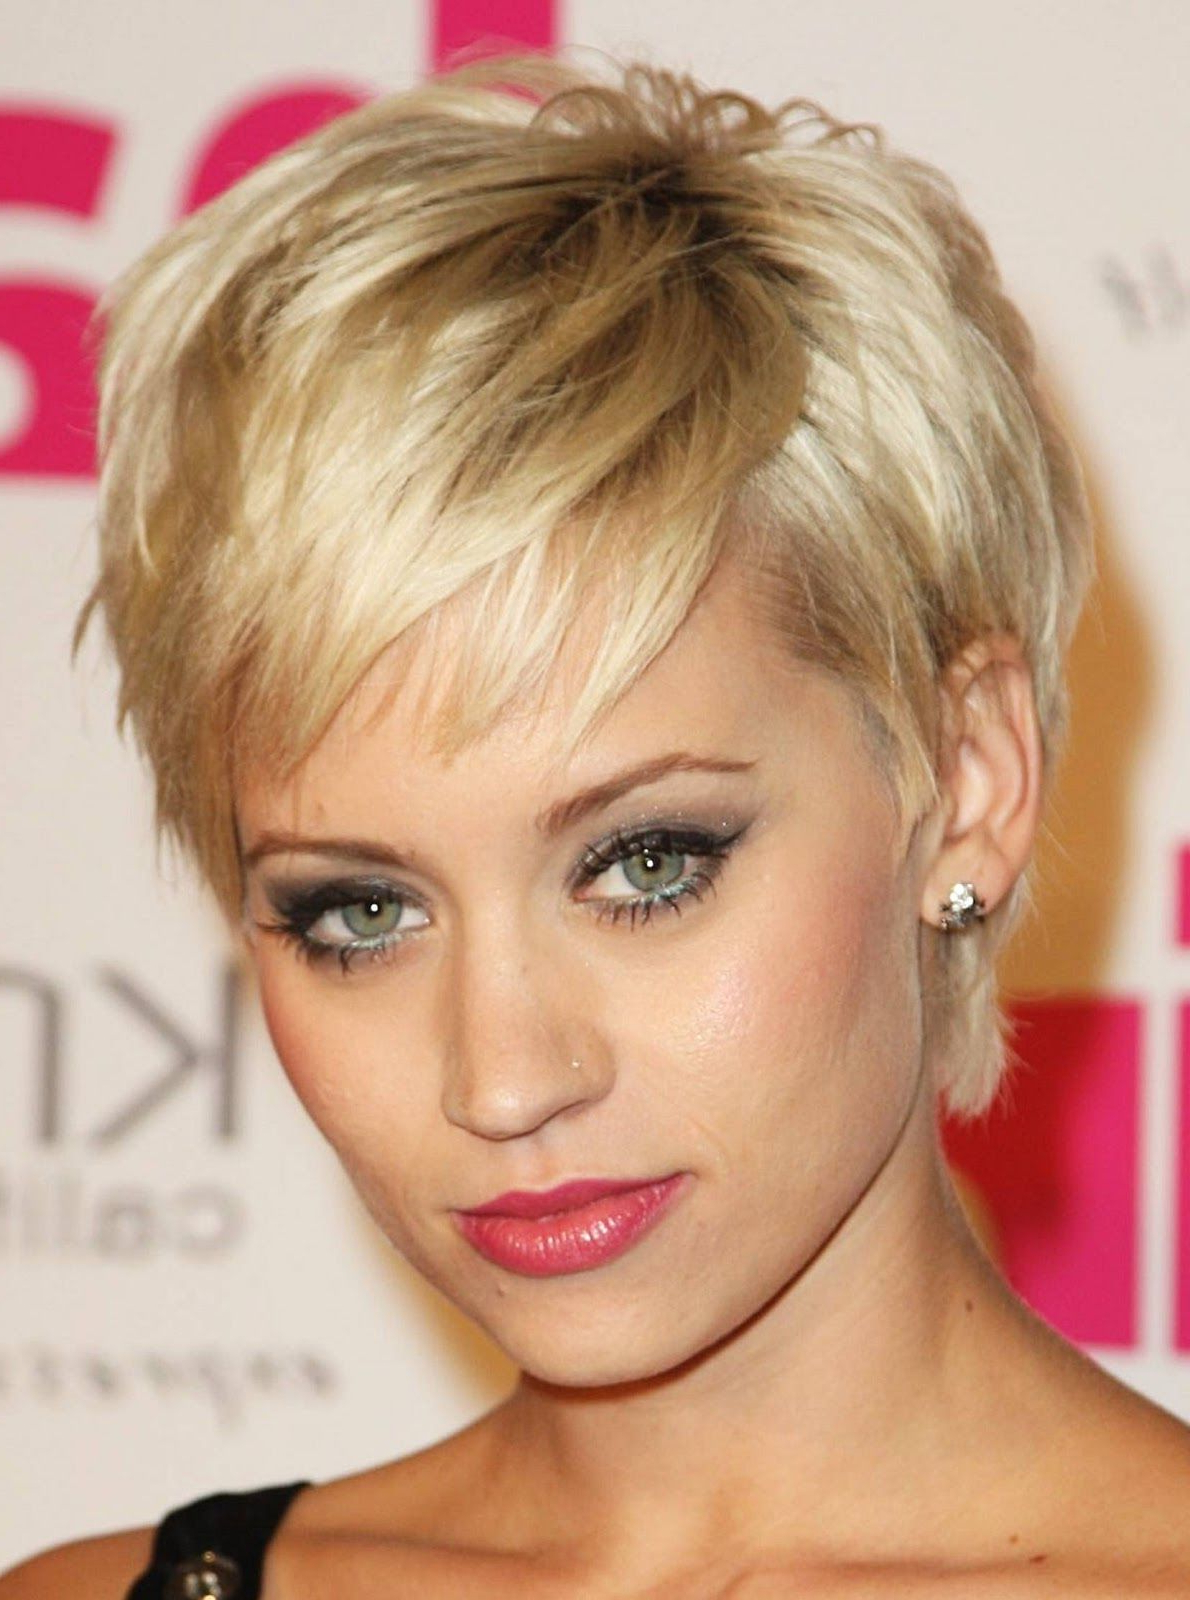 Easy Maintenance Haircuts For Women | Short Hairstyles For Women Within Short Female Hair Cuts (View 6 of 25)